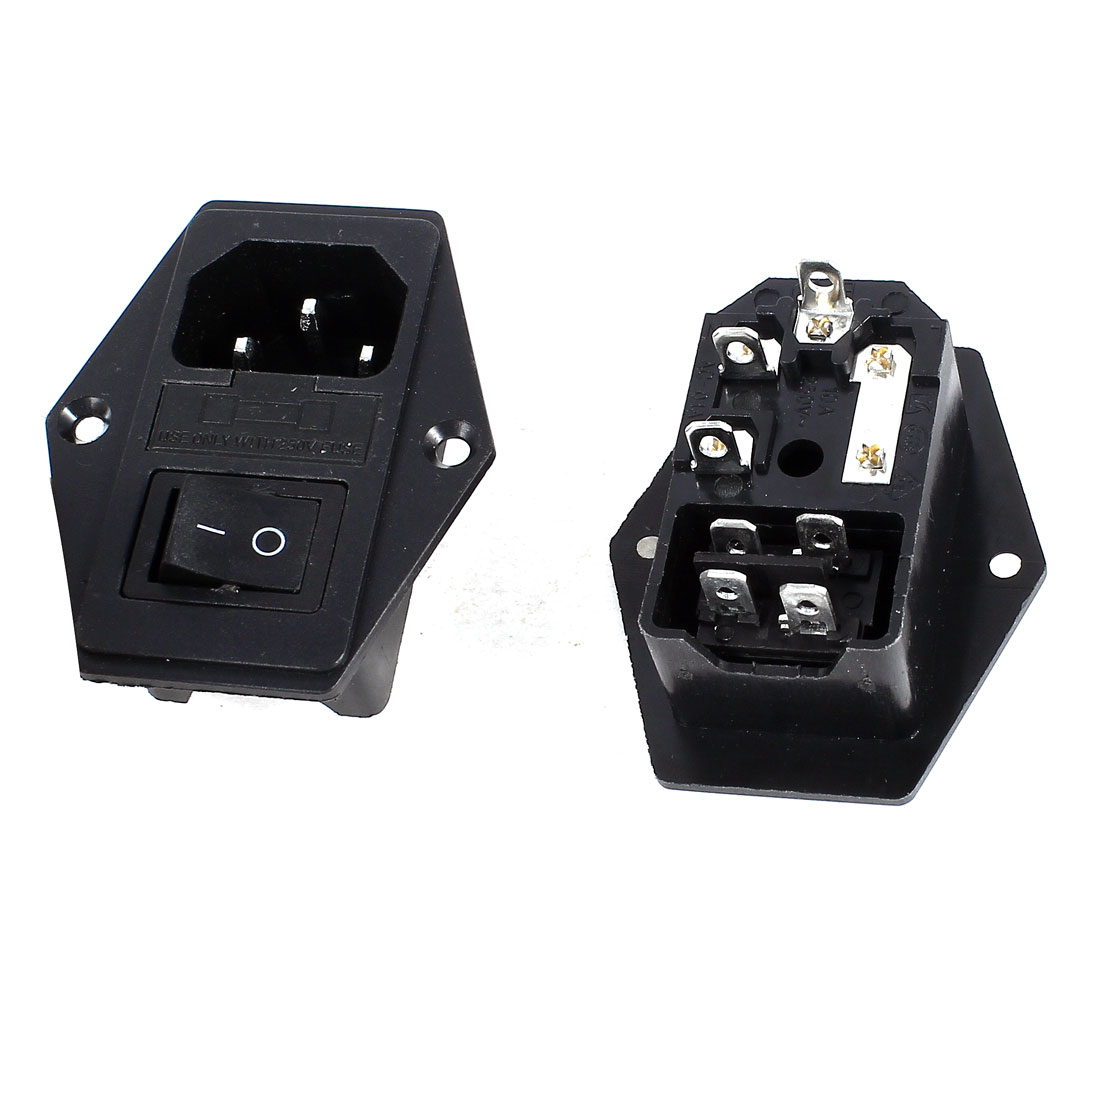 2 Pcs Panel Mount DPST Rocker Switch Fuse IEC320 C14 Inlet Power Socket AC 250V 5A